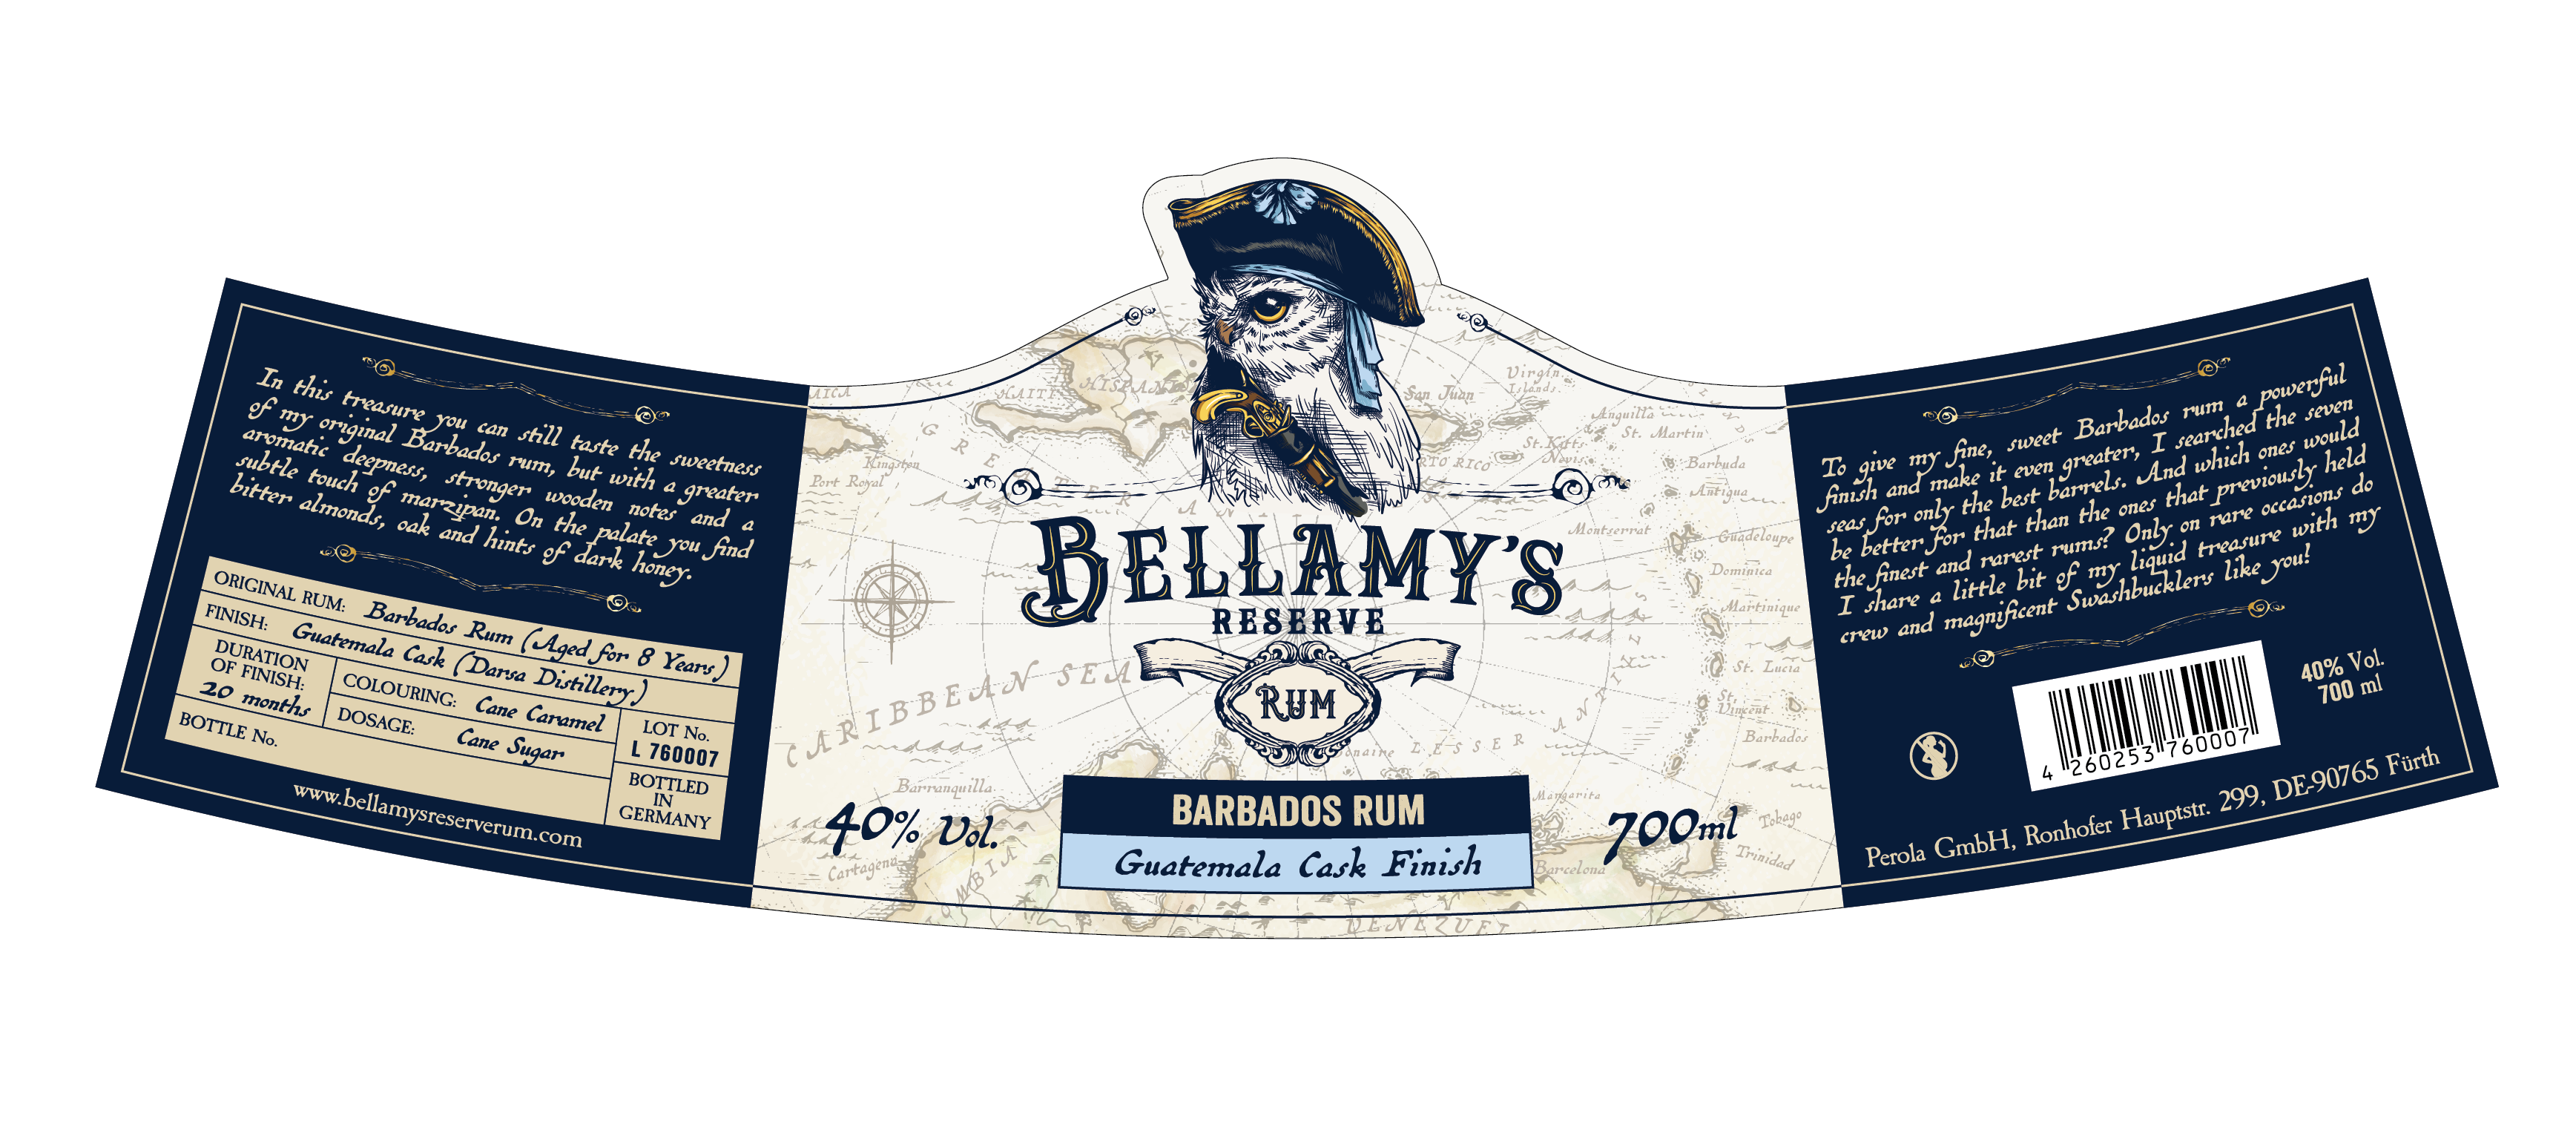 Design (Label, Coin, Cork Print,...) for our Bellamy's Reserve Rum